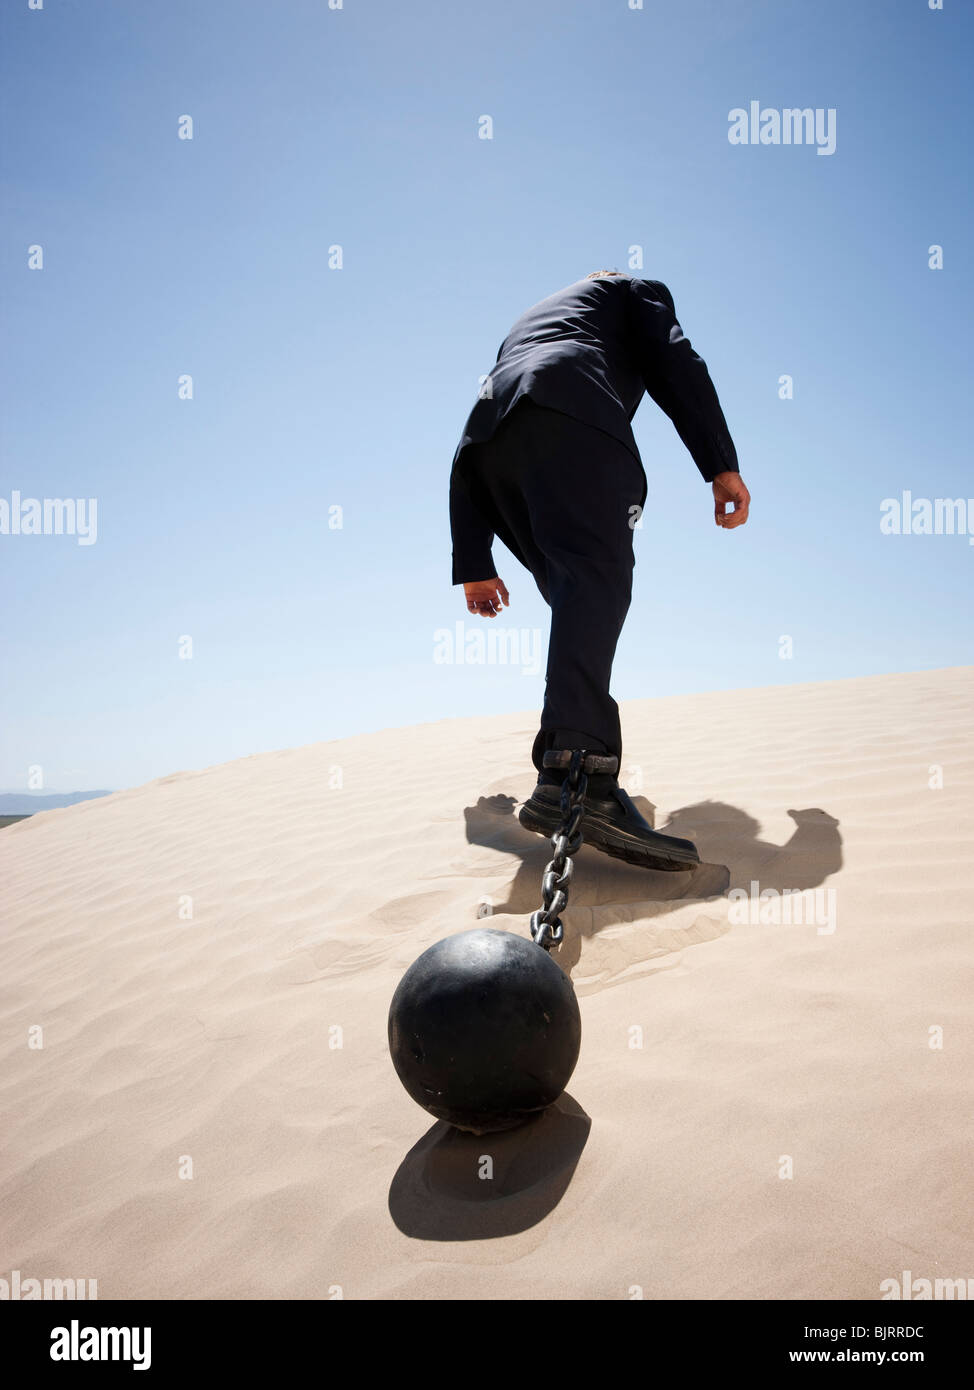 USA, Utah, Little Sahara, mid adult businessman pulling ball in chain on desert, rear view, low angle view - Stock Image